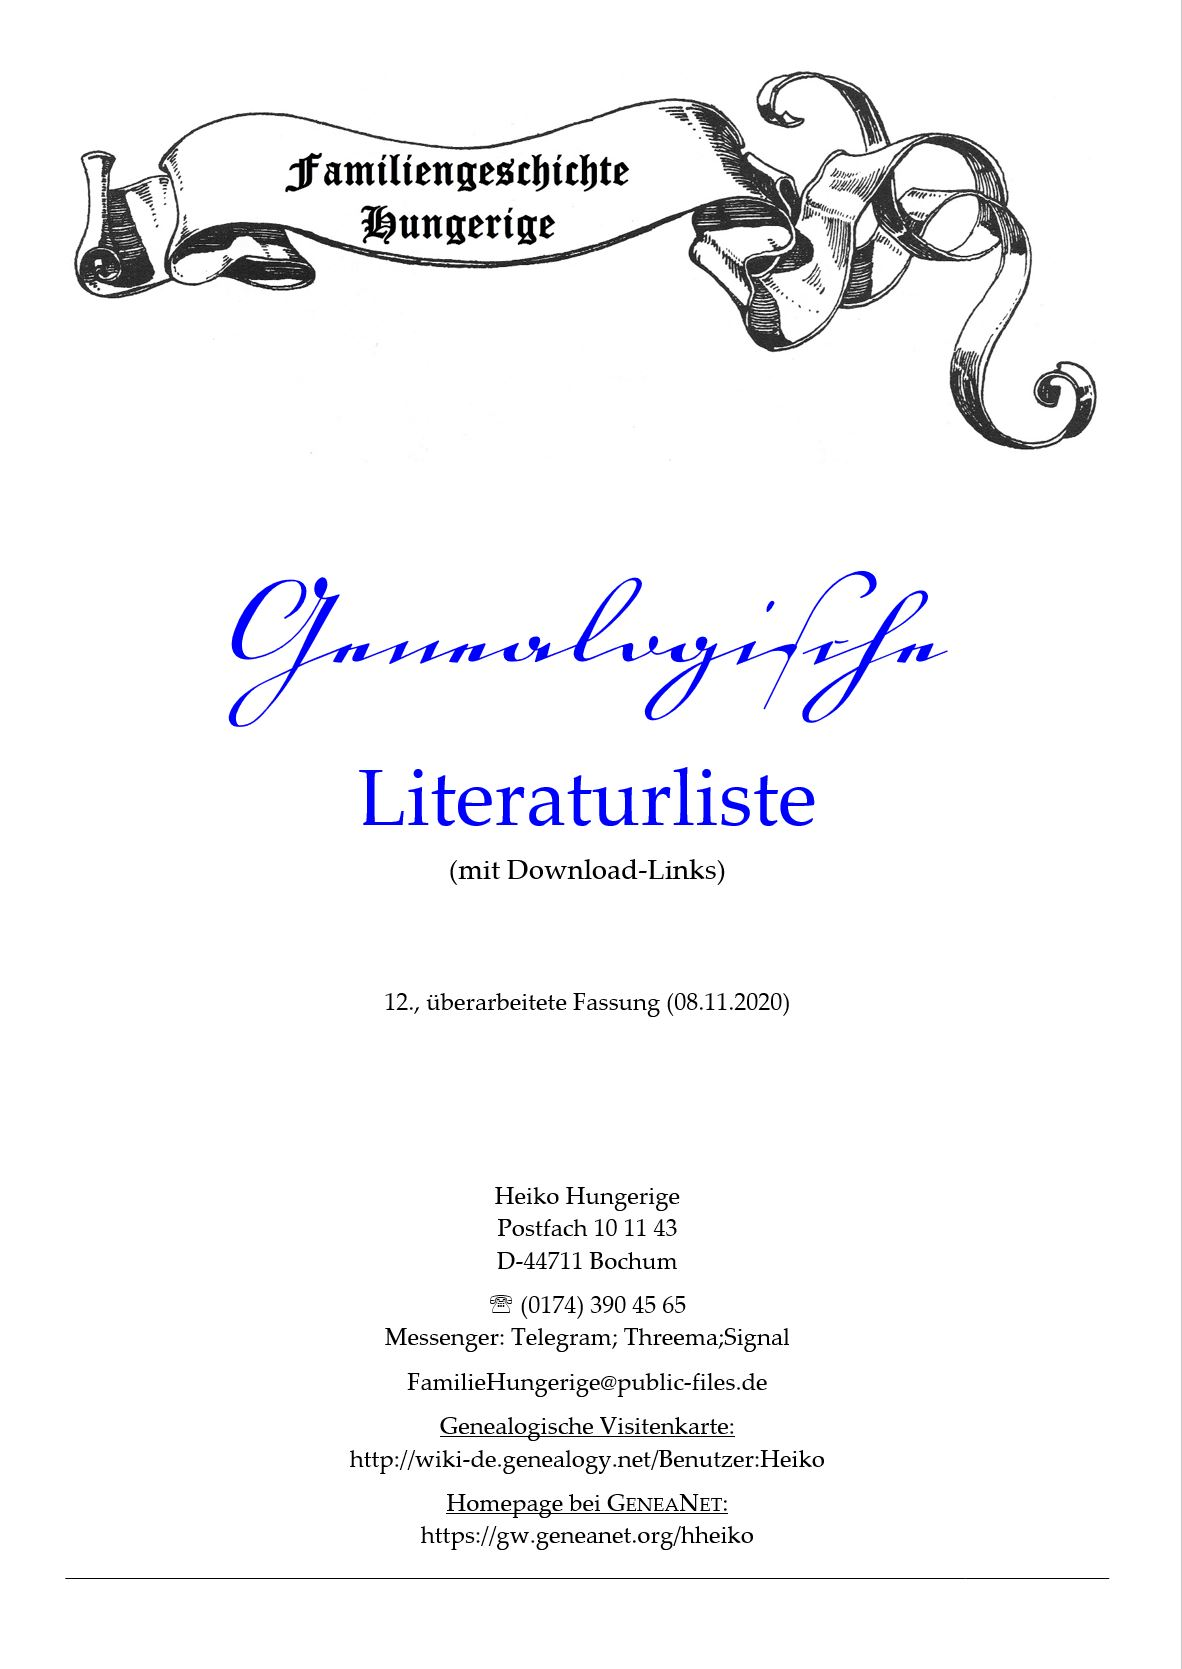 Hungerige (2020), Genealogische Literaturliste (mit Download-Links)